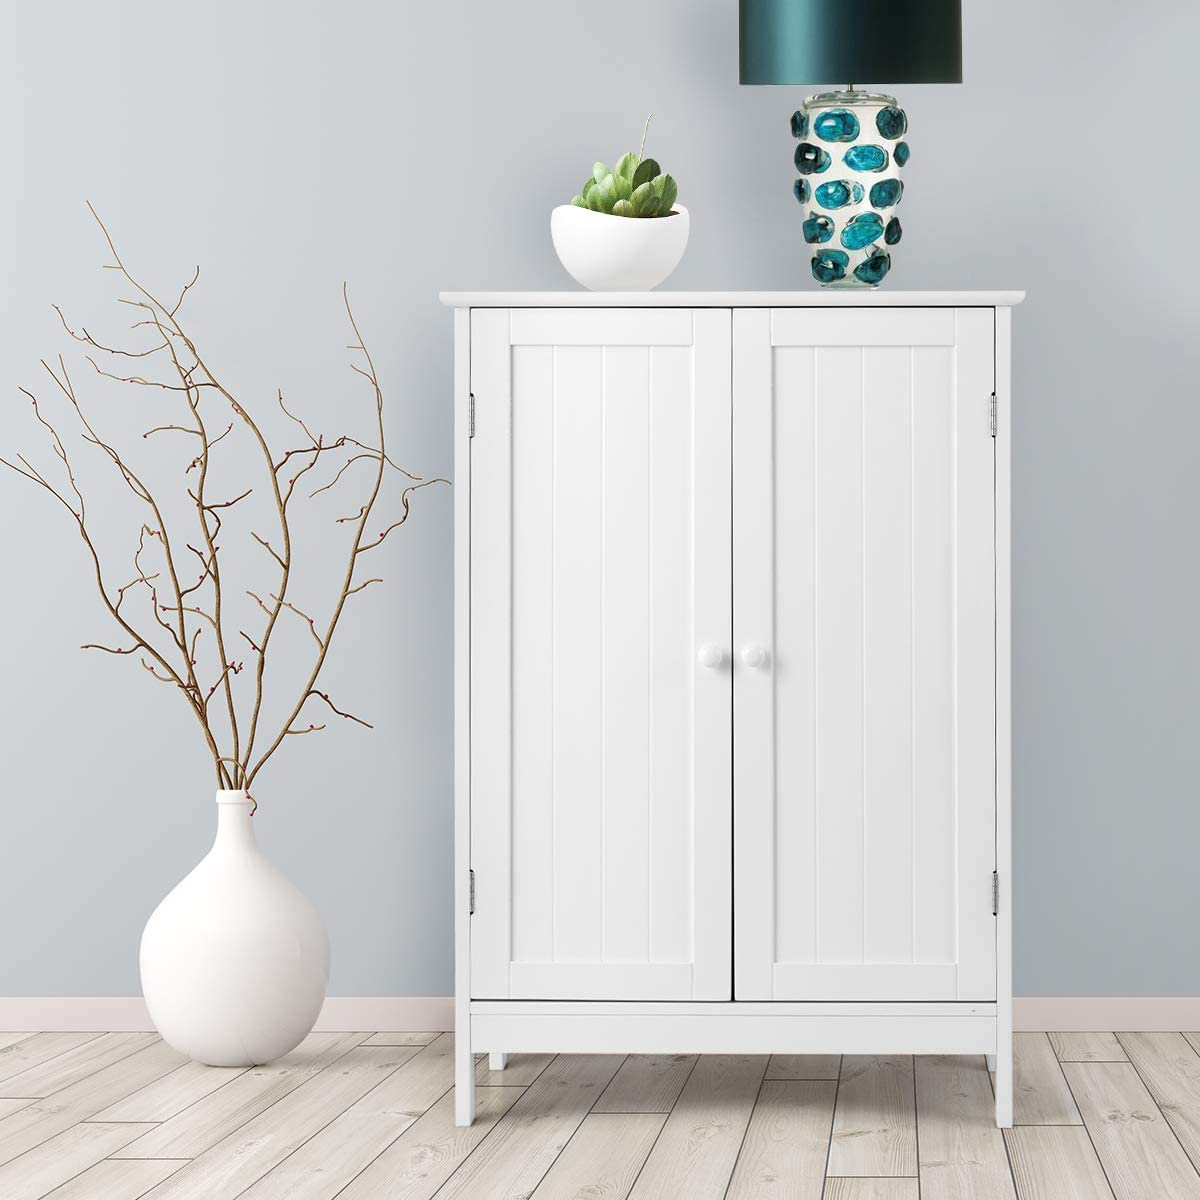 Tangkula Bathroom Floor Cabinet, Wooden Floor Storage Cabinet, Living Room Modern Home Furniture Free Standing Storage Cabinet, 23.5x14x34 inches White